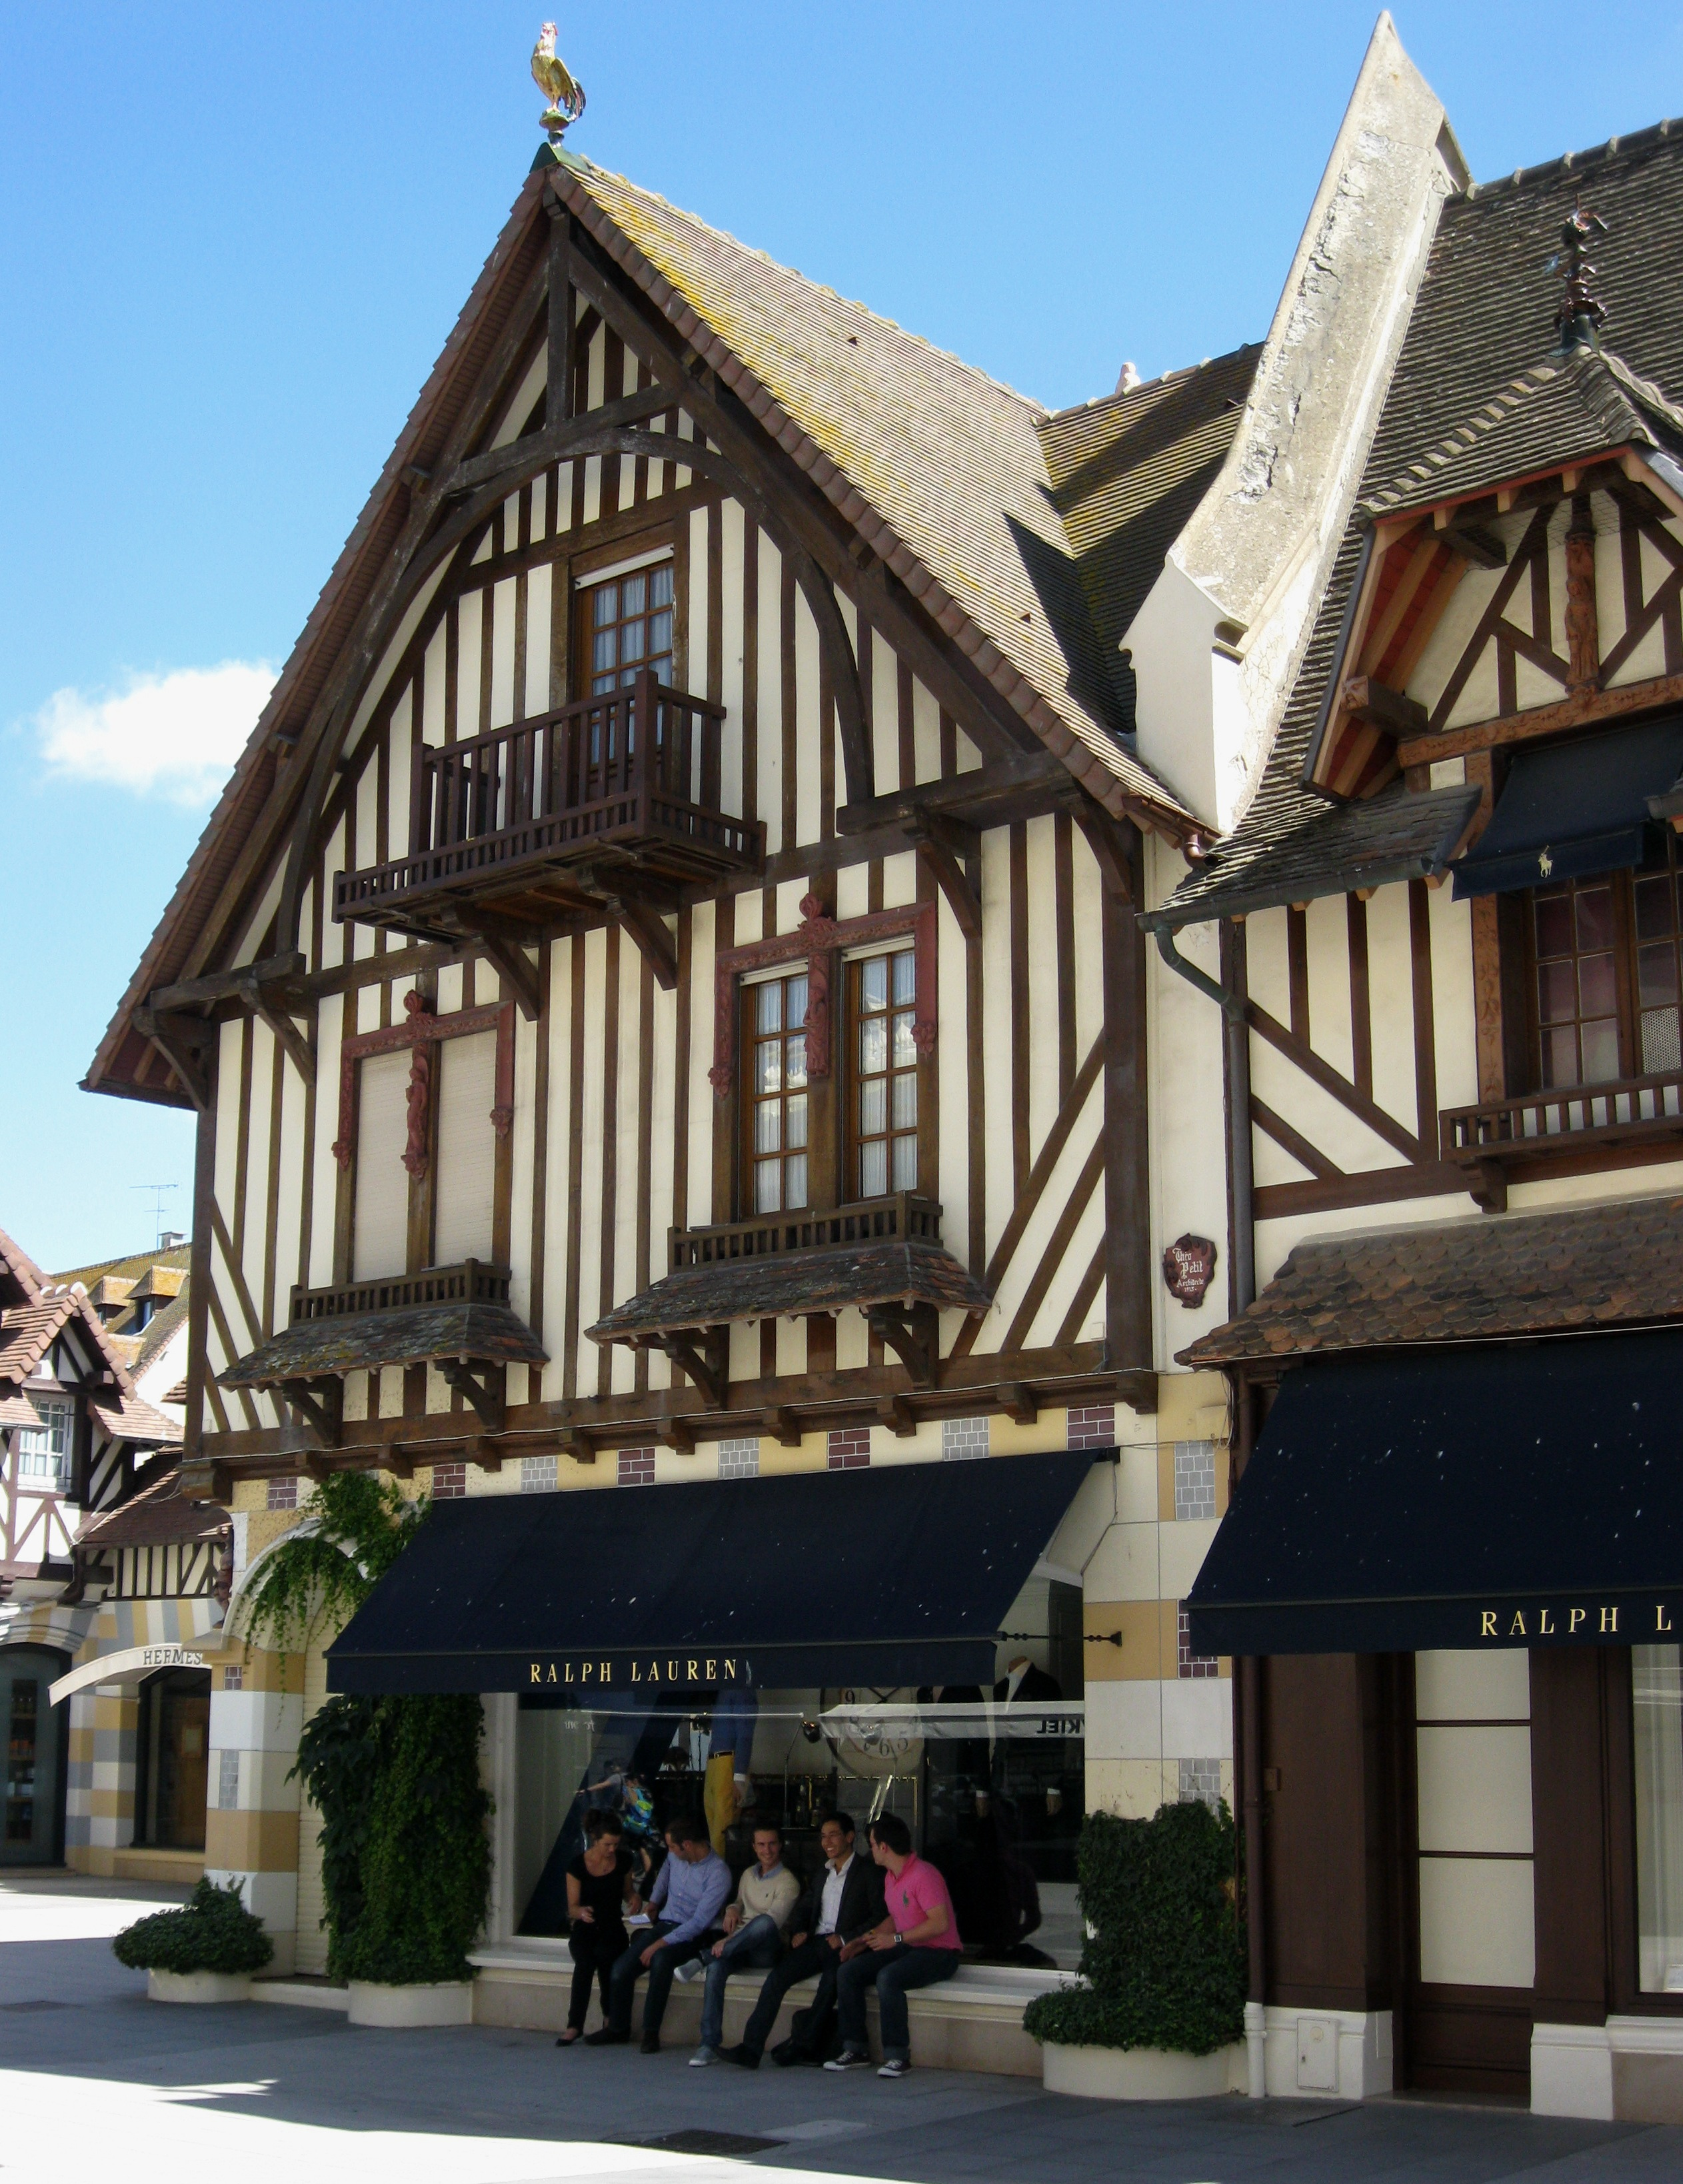 My afternoon in Deauville: sea, pics and shops – Ritournelle